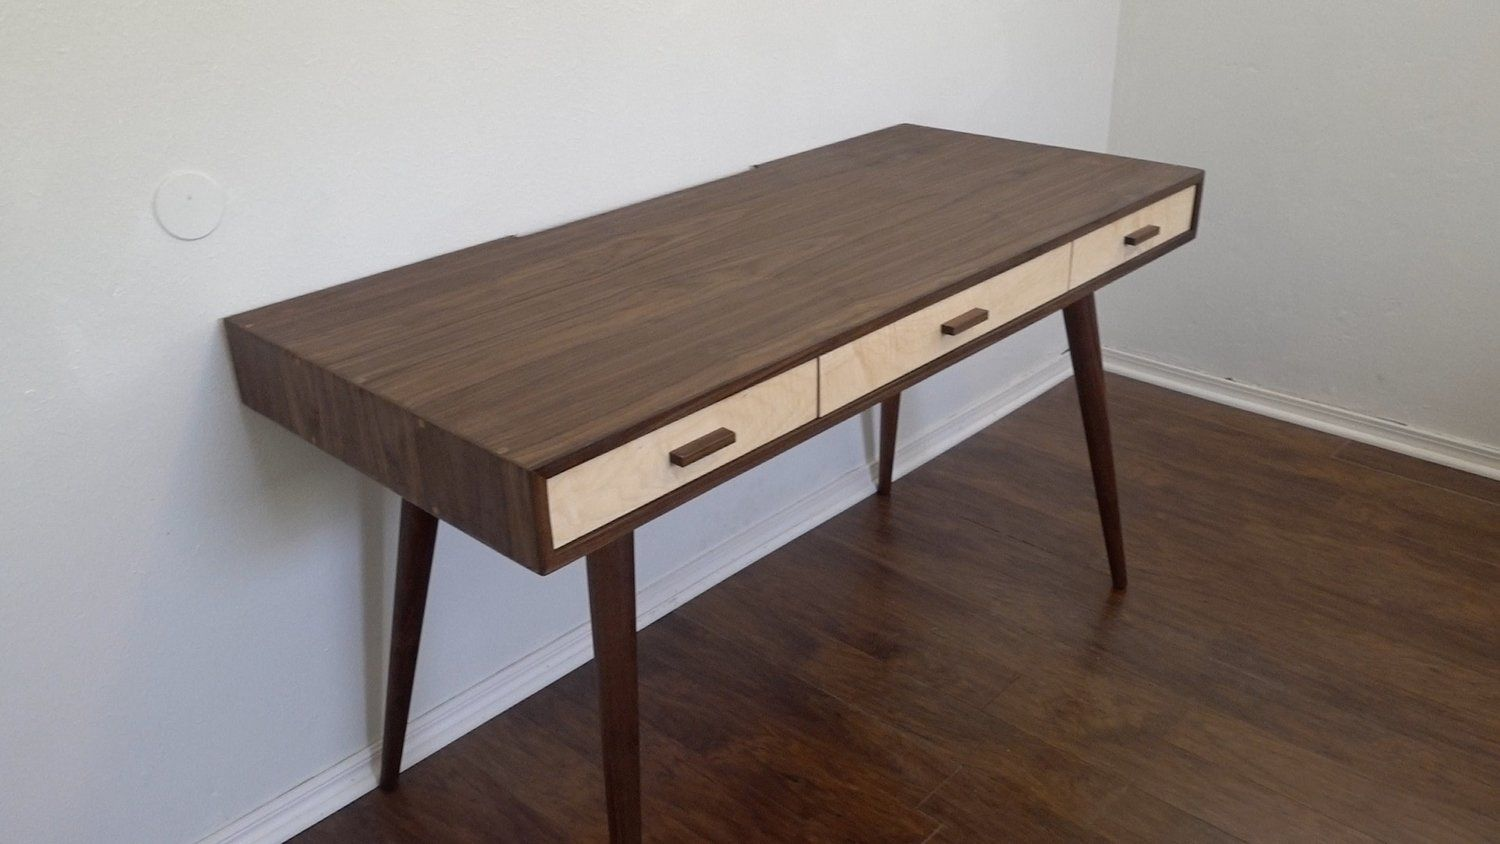 Let's build a classy, but simple to build, mid century